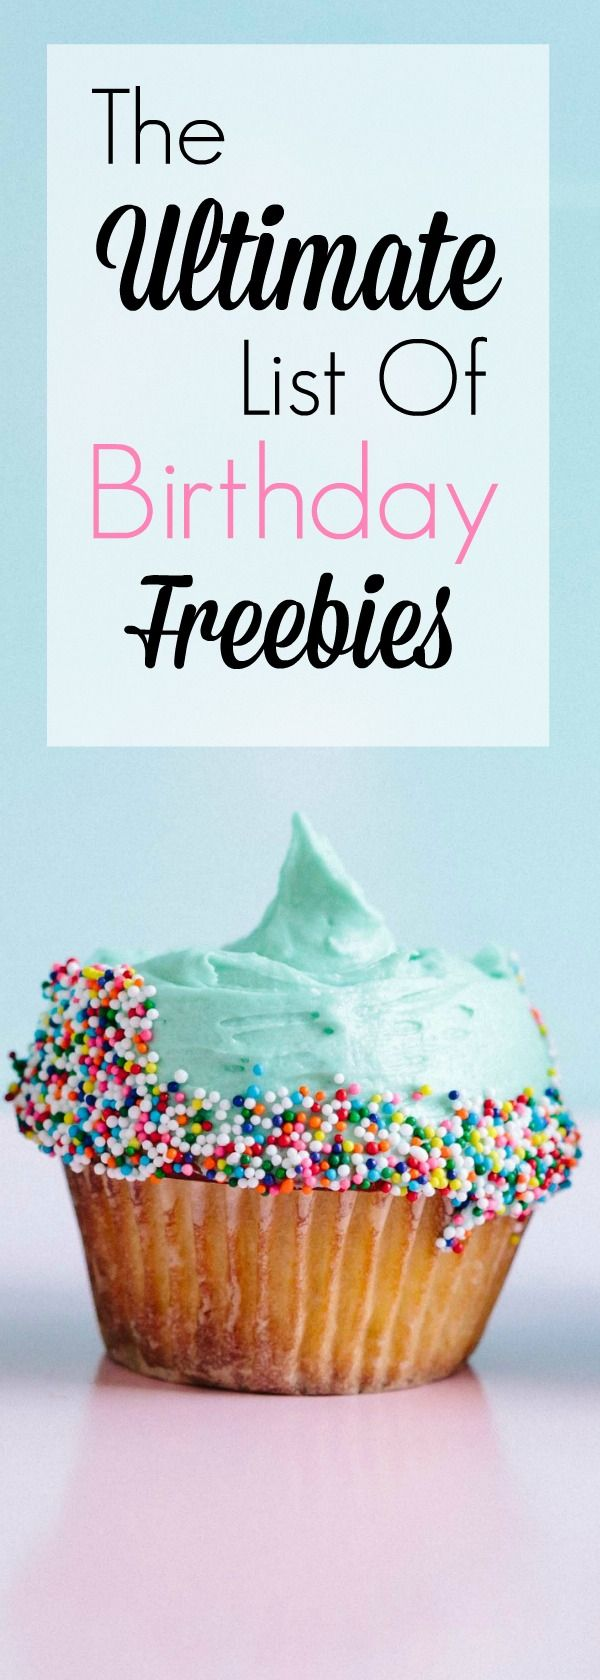 Who doesn't love free stuff? I love birthday freebies! If you are looking for free things to do on your birthday look no further. You're going to love these birthday freebies for your favorite restaurants.